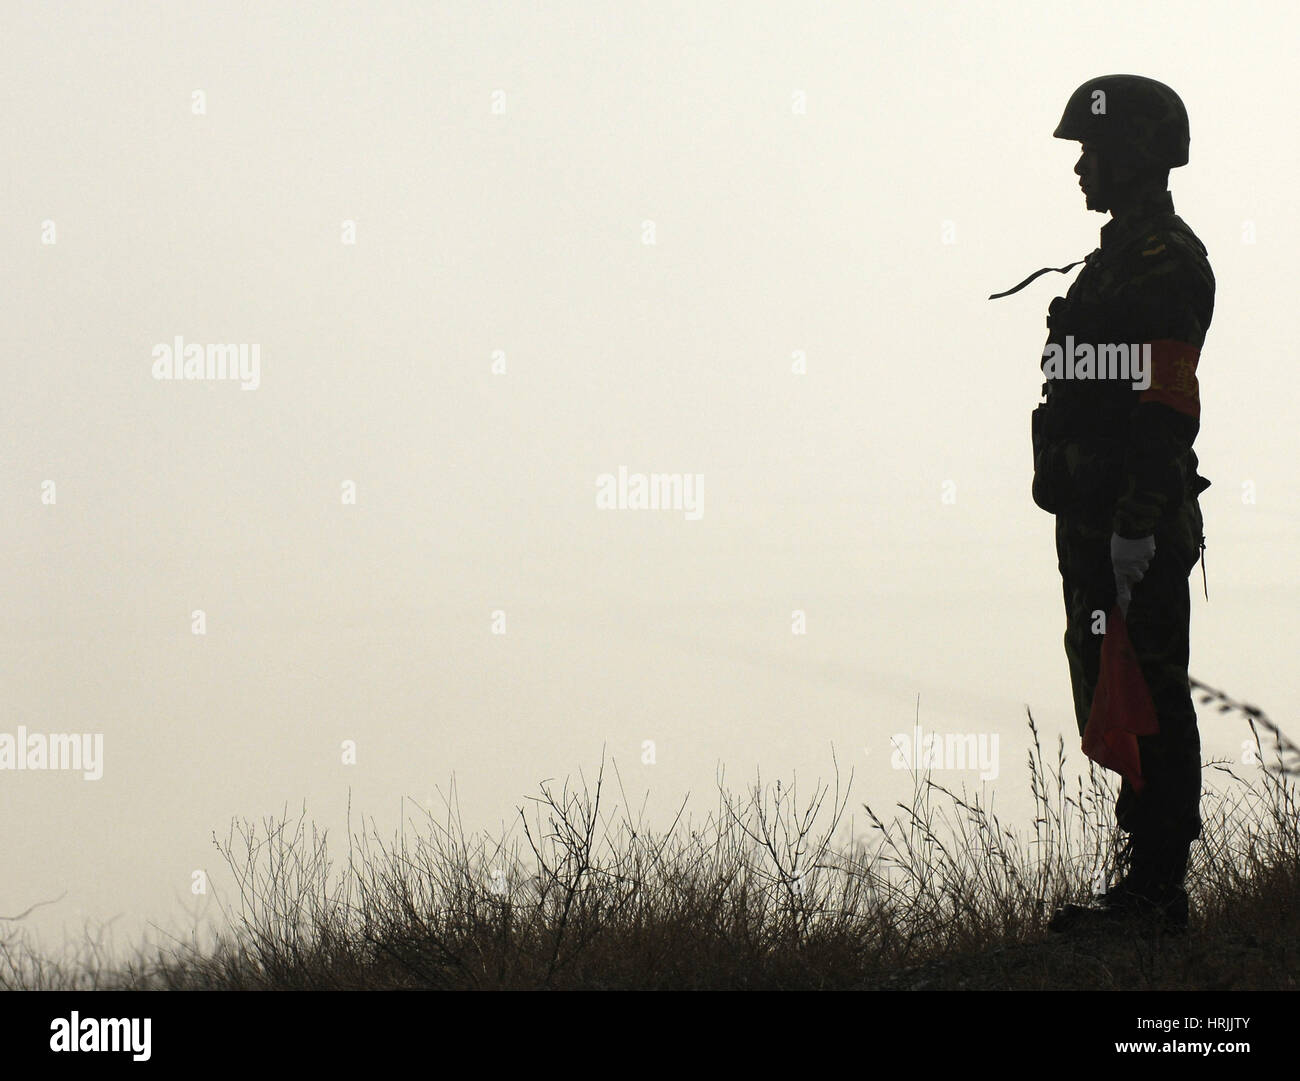 Chinese Soldier, People's Liberation Army, 2007 - Stock Image